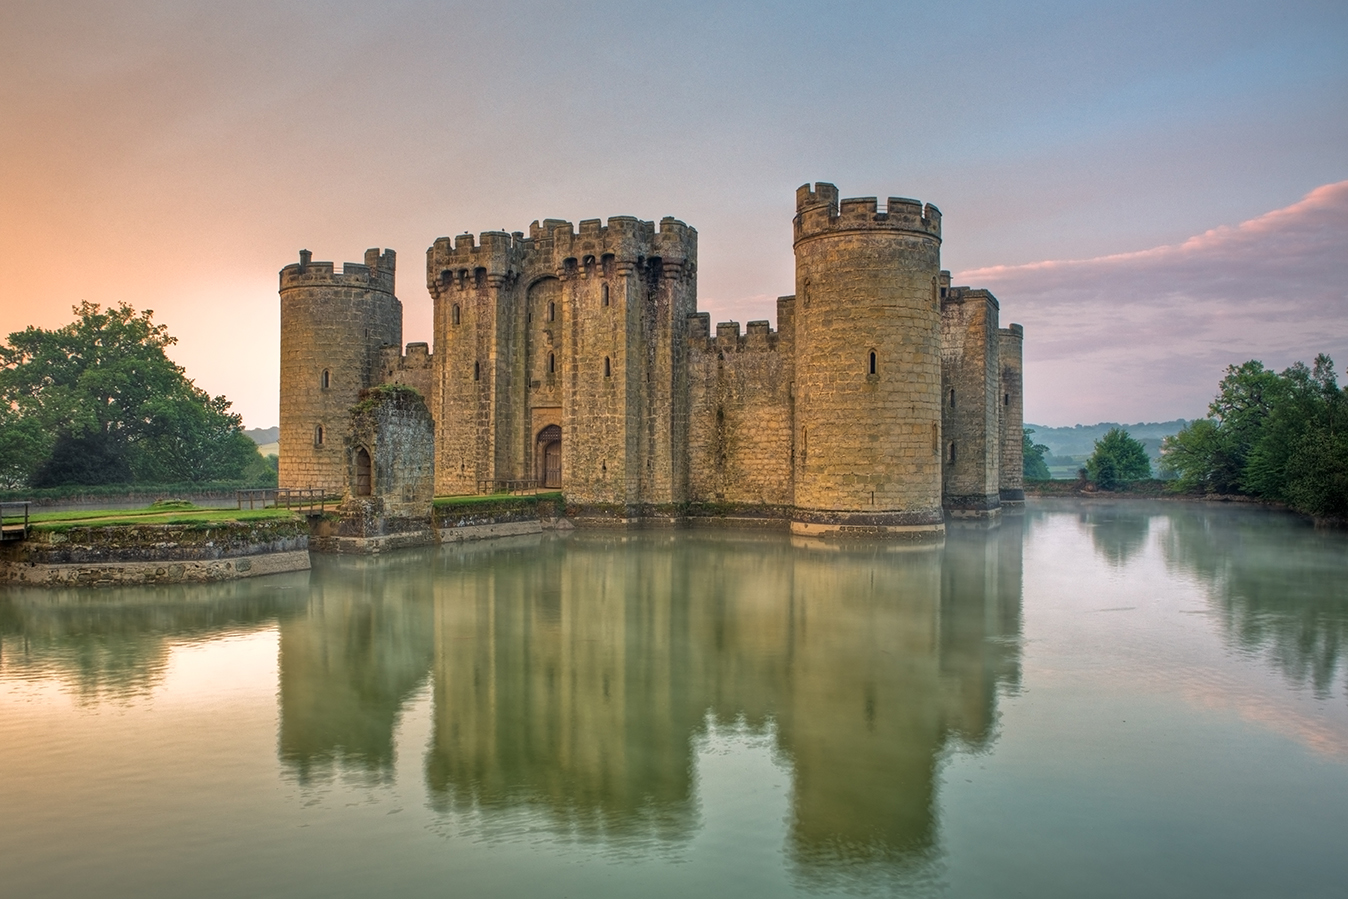 Picture of Medieval Castle on a lake